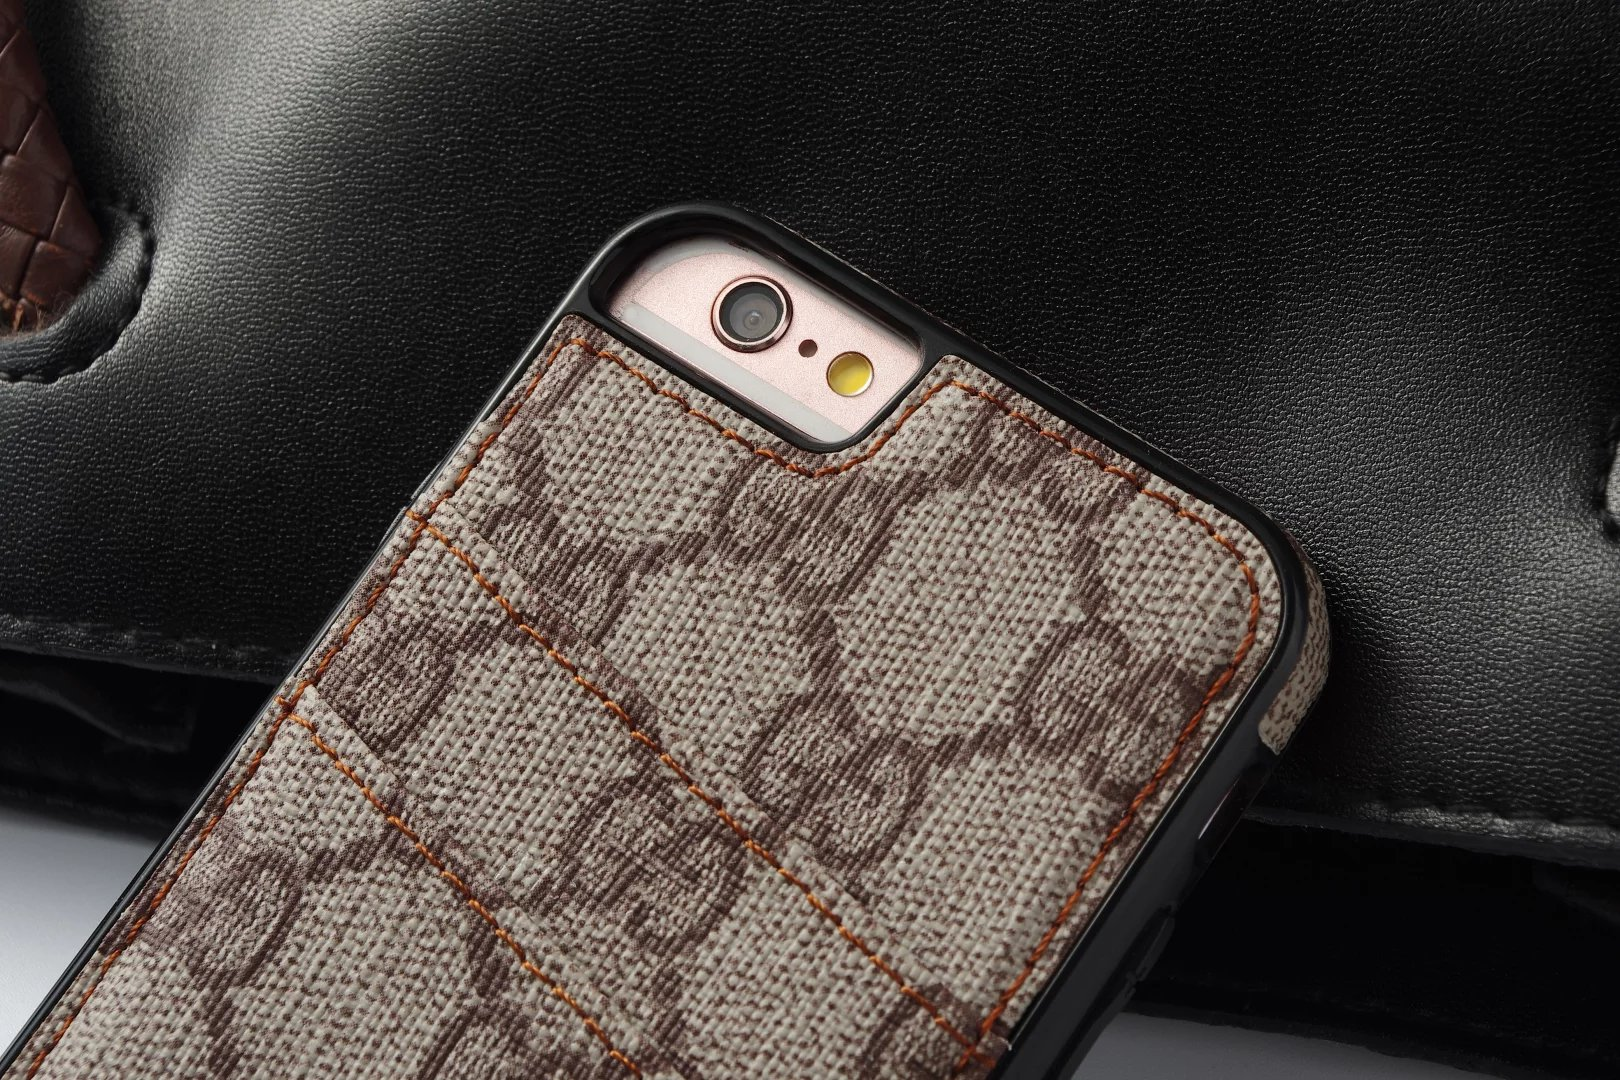 iphone hülle eigenes foto iphone hülle individuell Louis Vuitton iphone 8 Plus hüllen iphone 8 Plus werbung silikon ca8 Plus iphone 8 Plus hülle 8 Pluslbst gestalten iphone 8 Plus a8 Plus test hülle für i phone 8 Plus iphone hülle